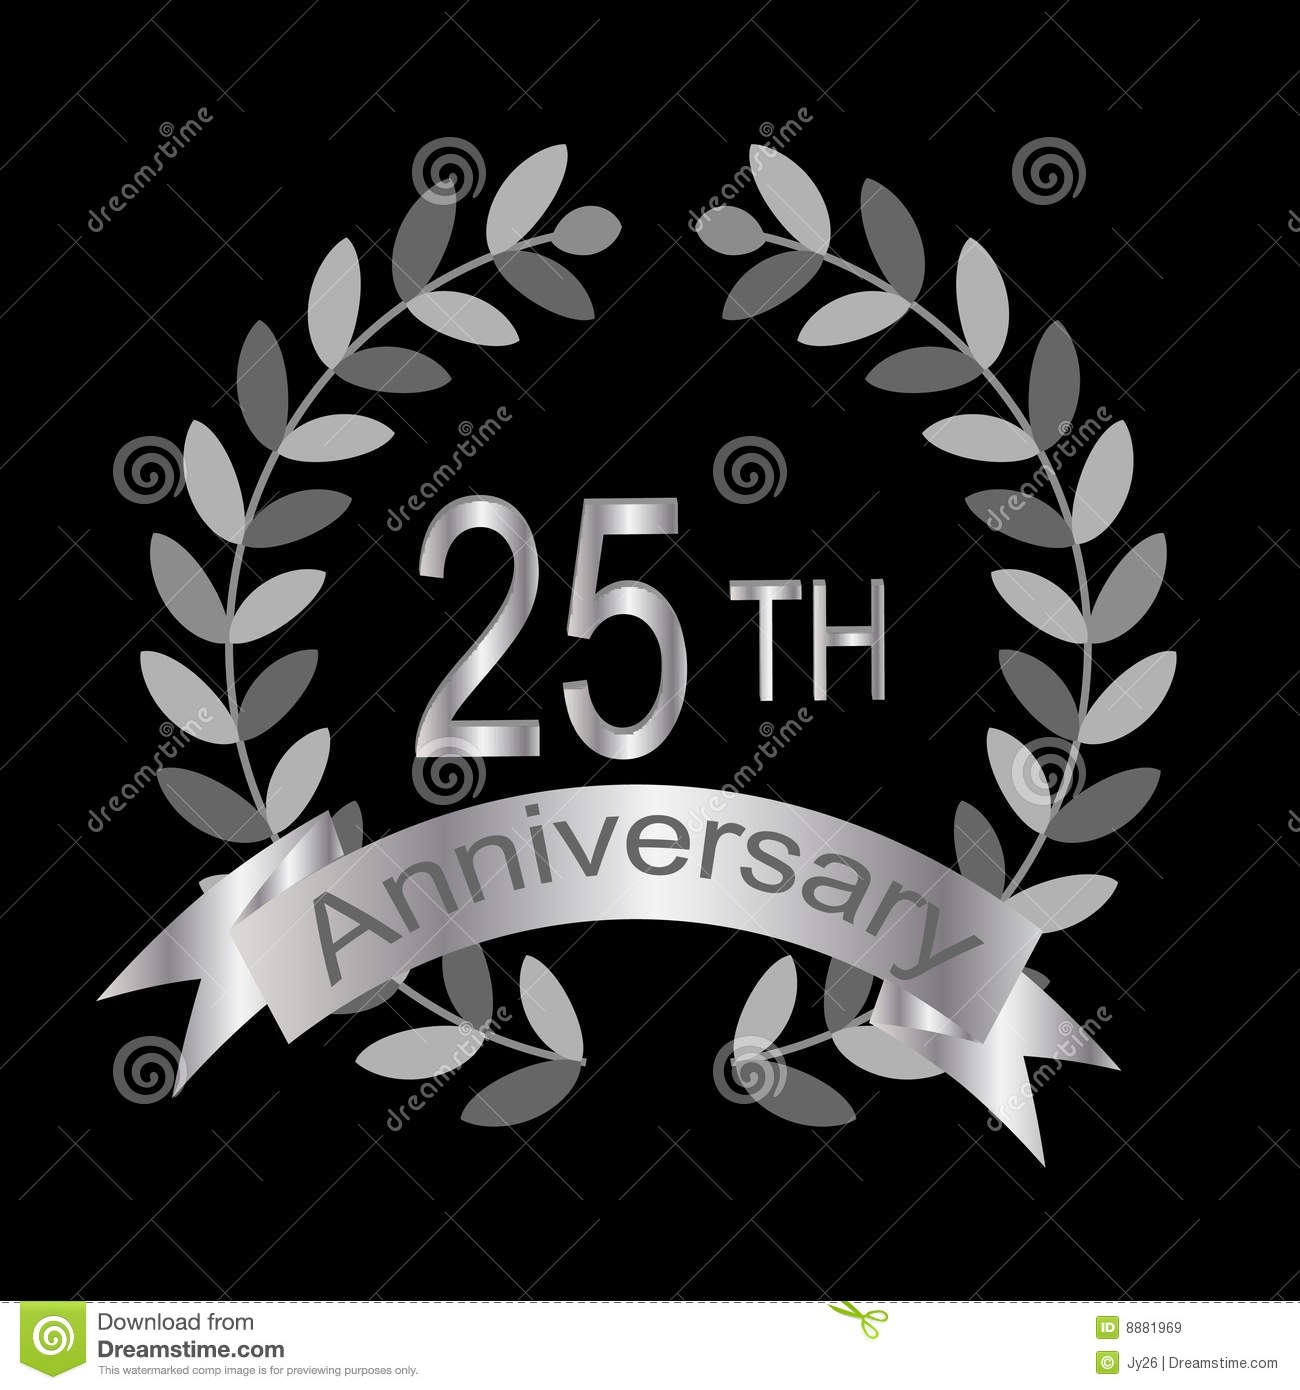 25th Anniversary vector Royalty Free Stock Images